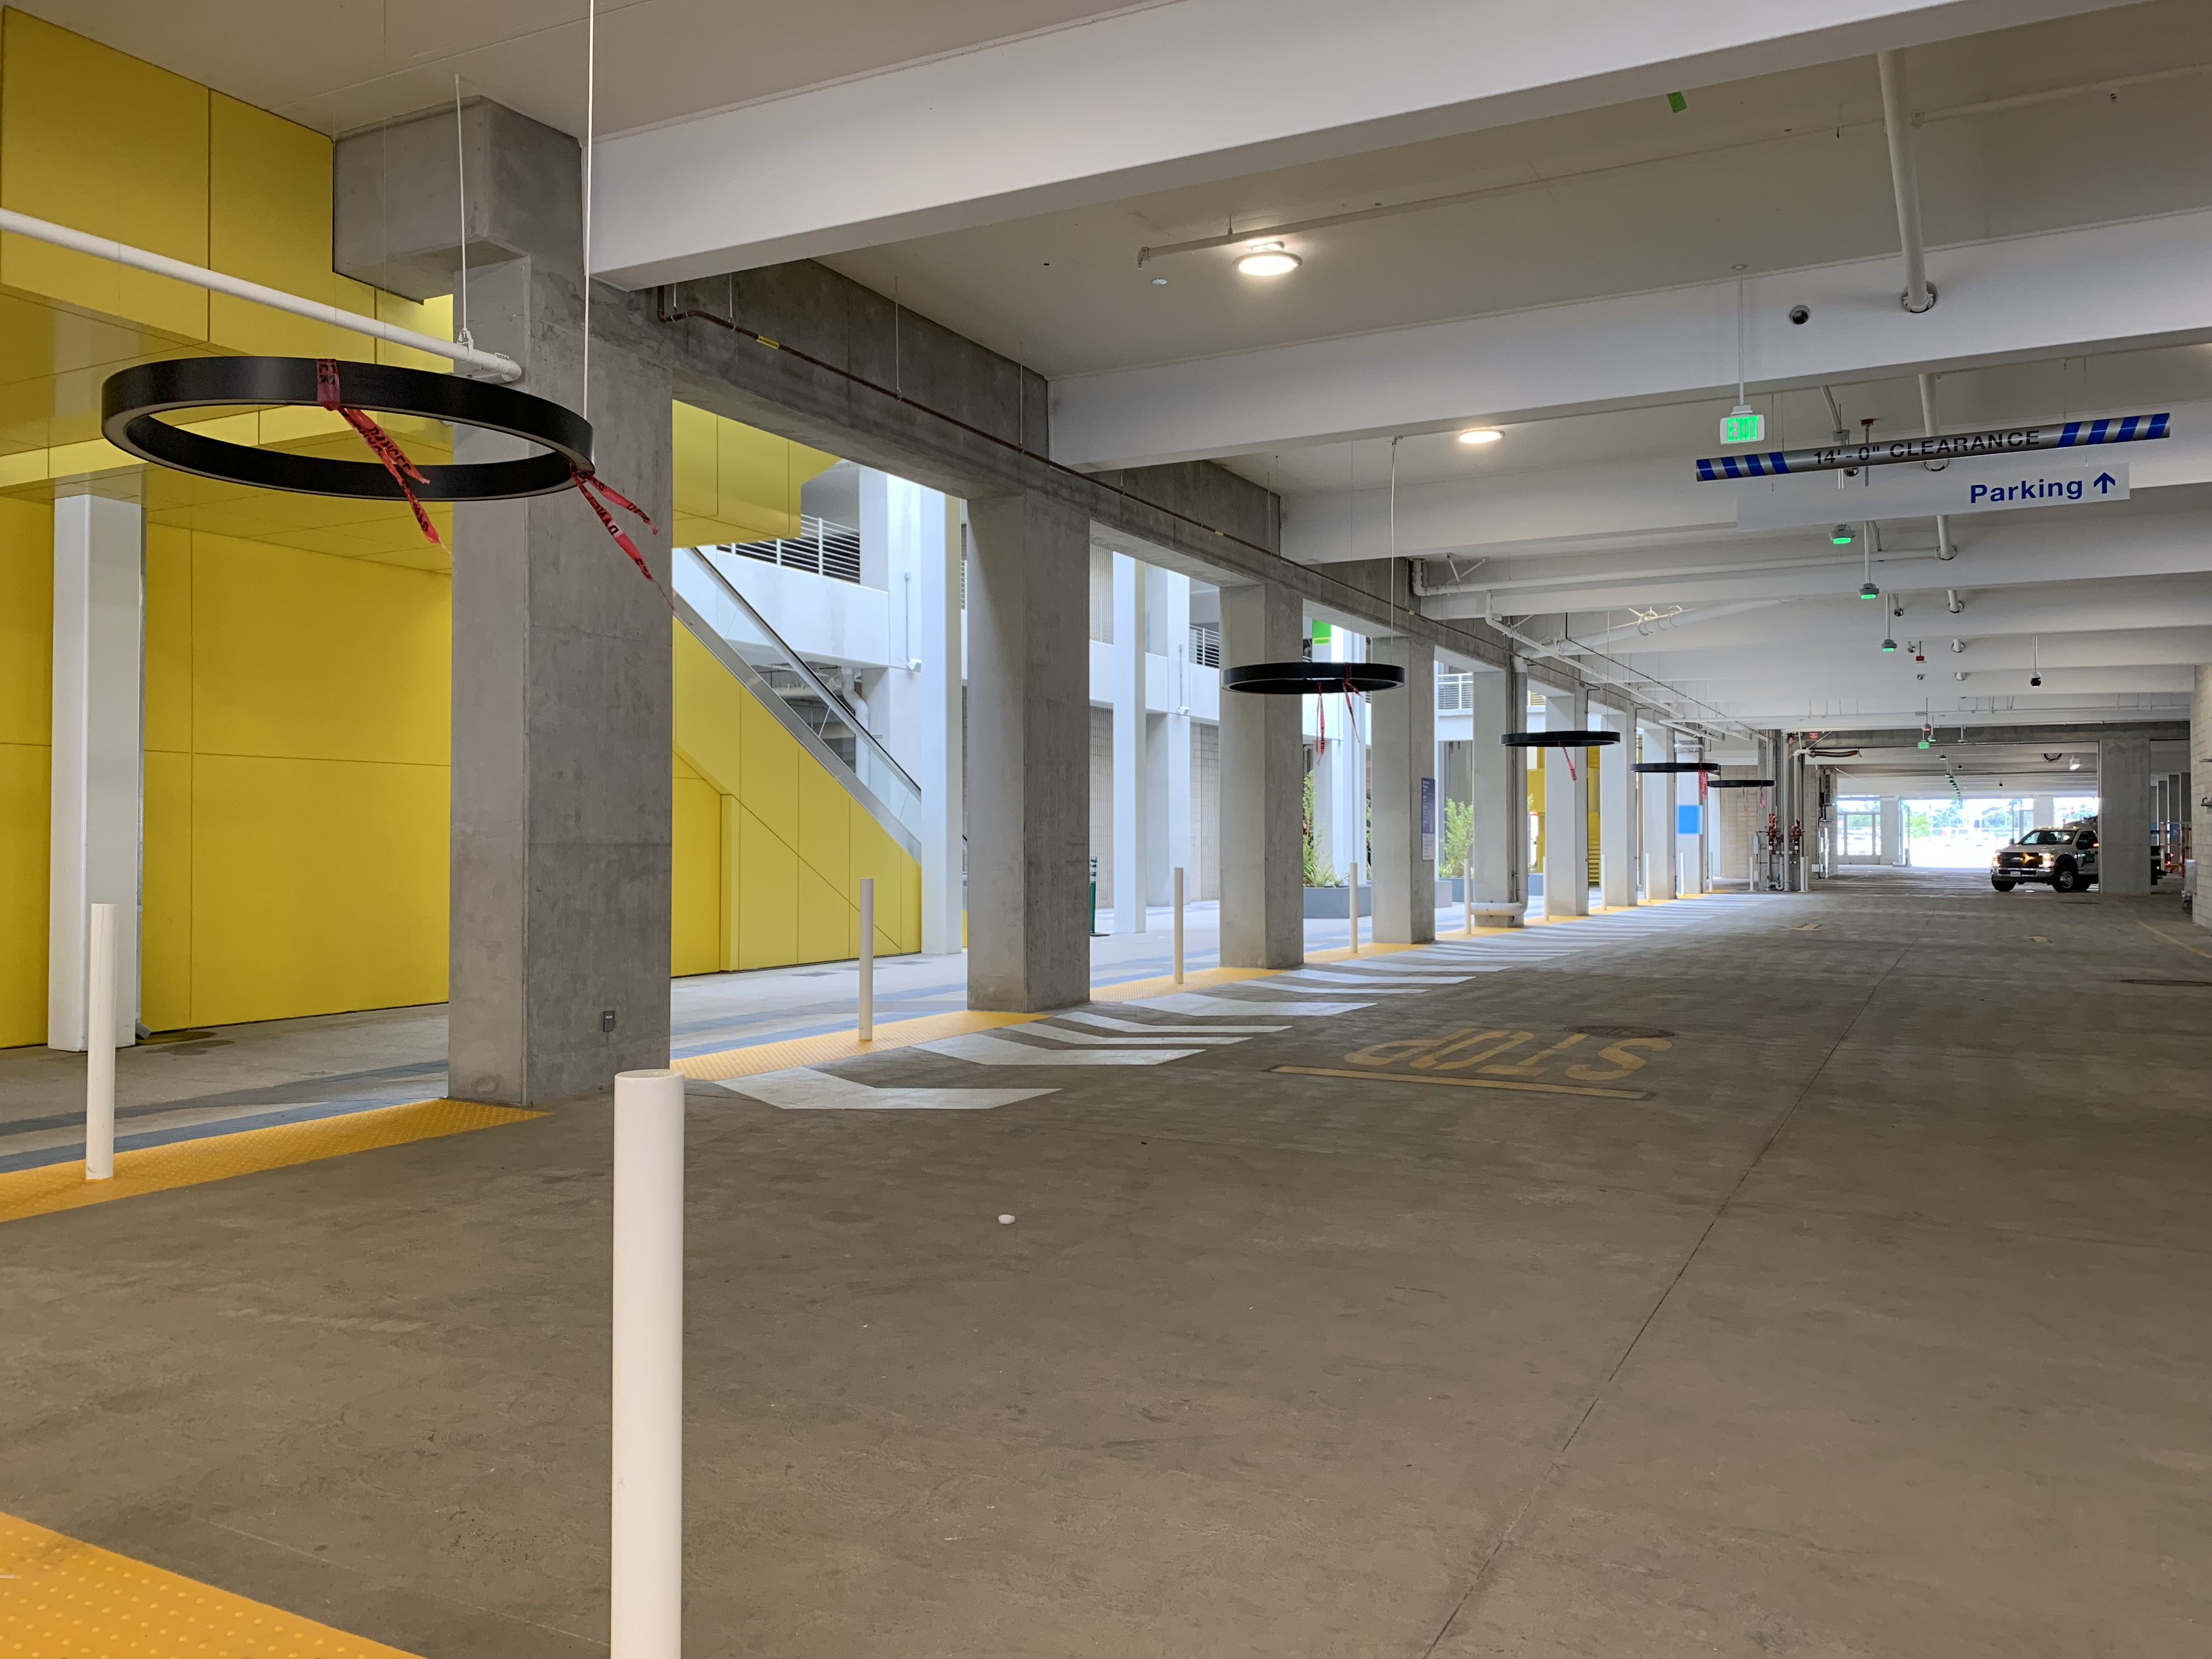 A view of a pedestrian pathway inside the Intermodal Transportation Facility-West.